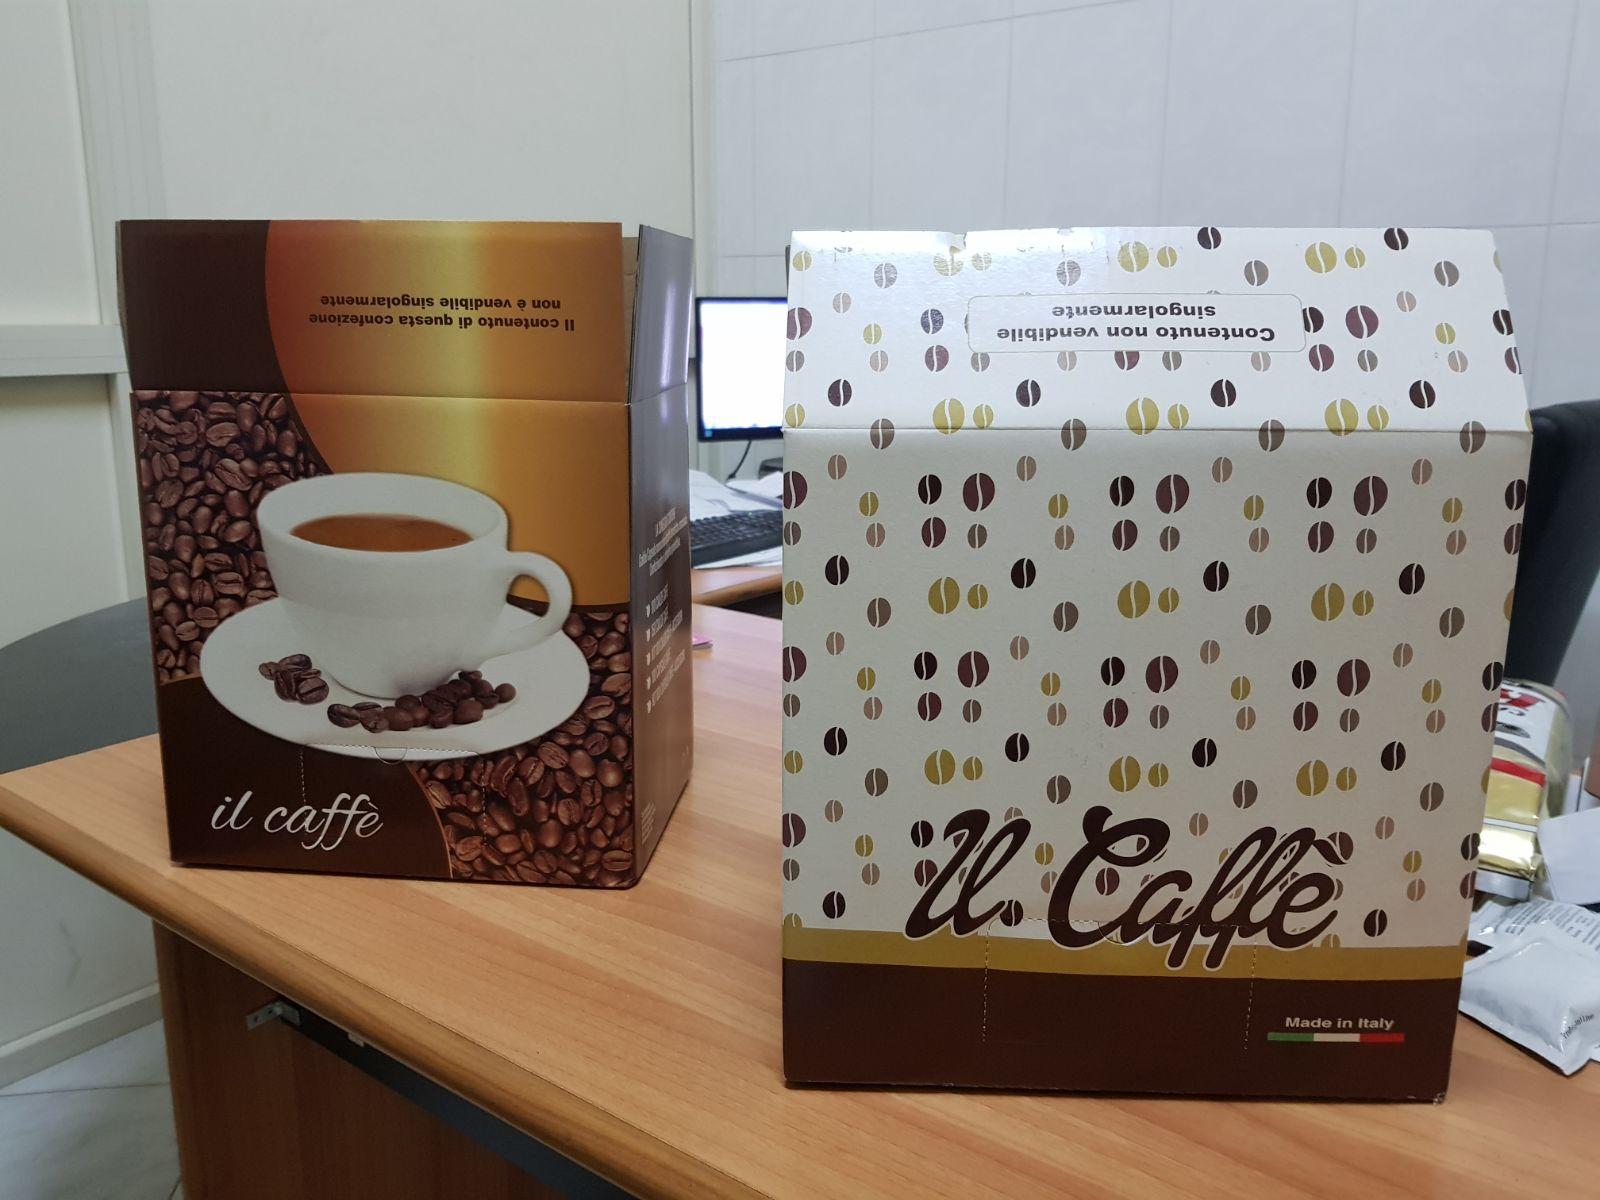 Arabica and Robusta coffee beans from ITALY